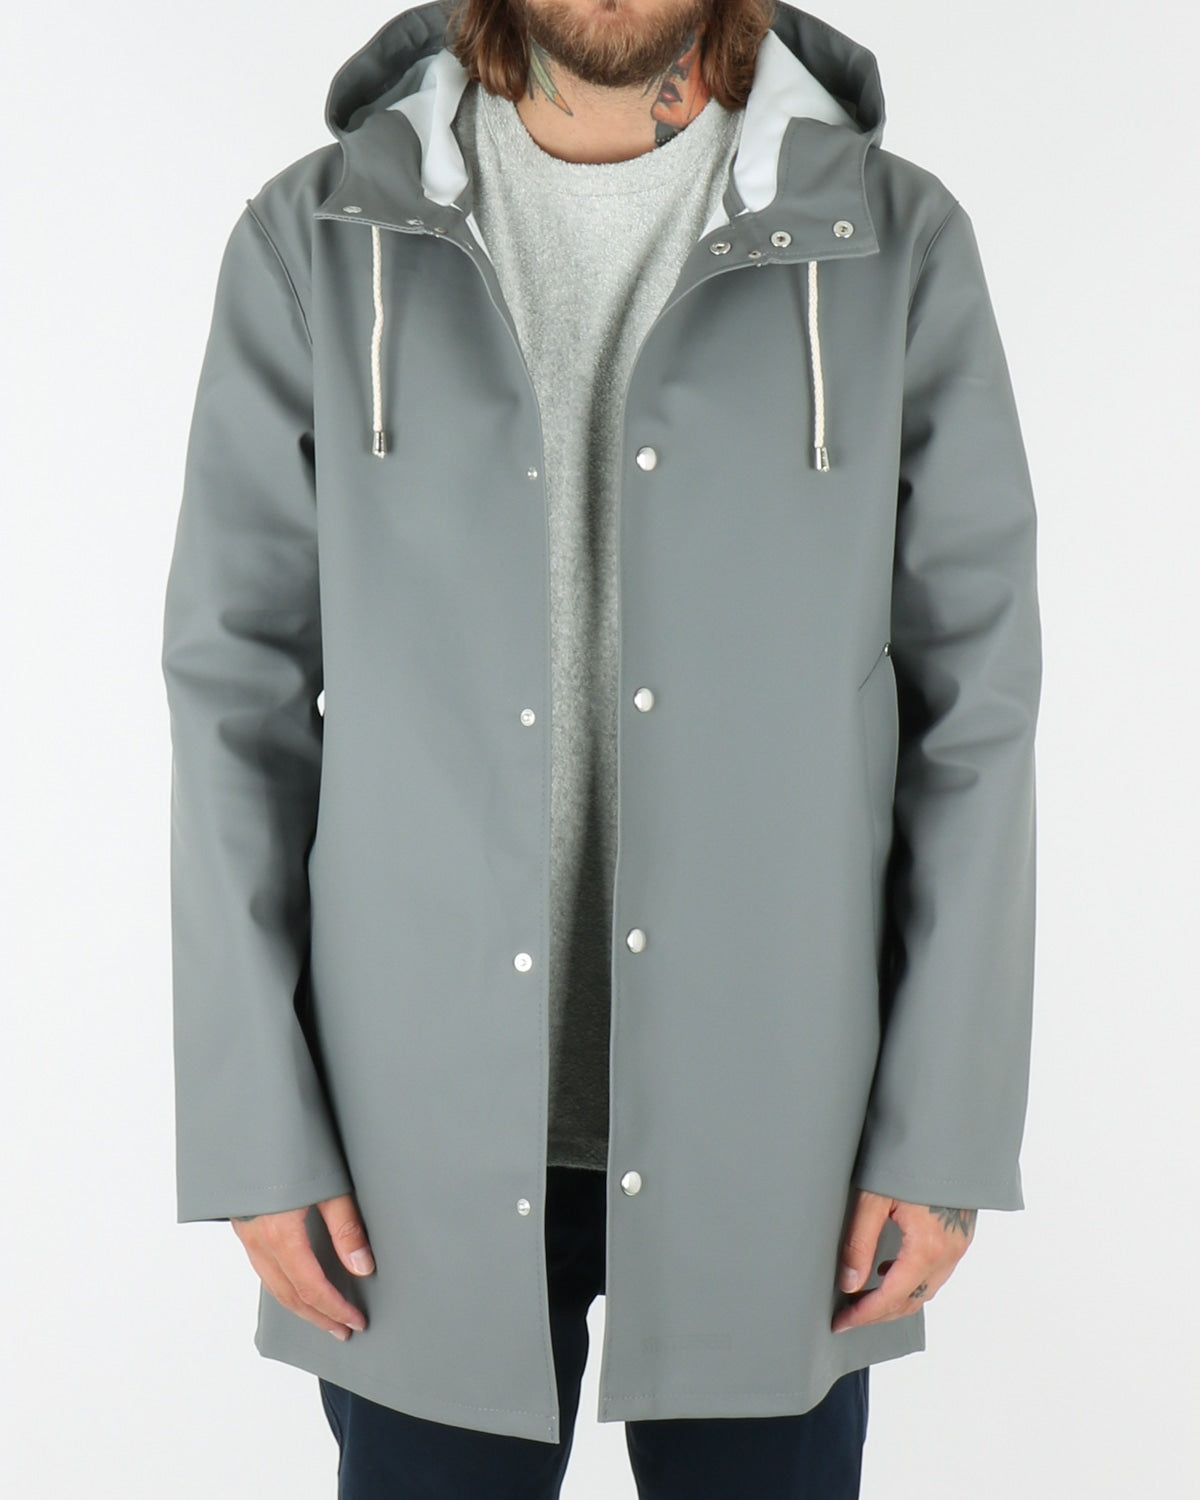 stutterheim_stockholm_raincoat_grey_view_3_4